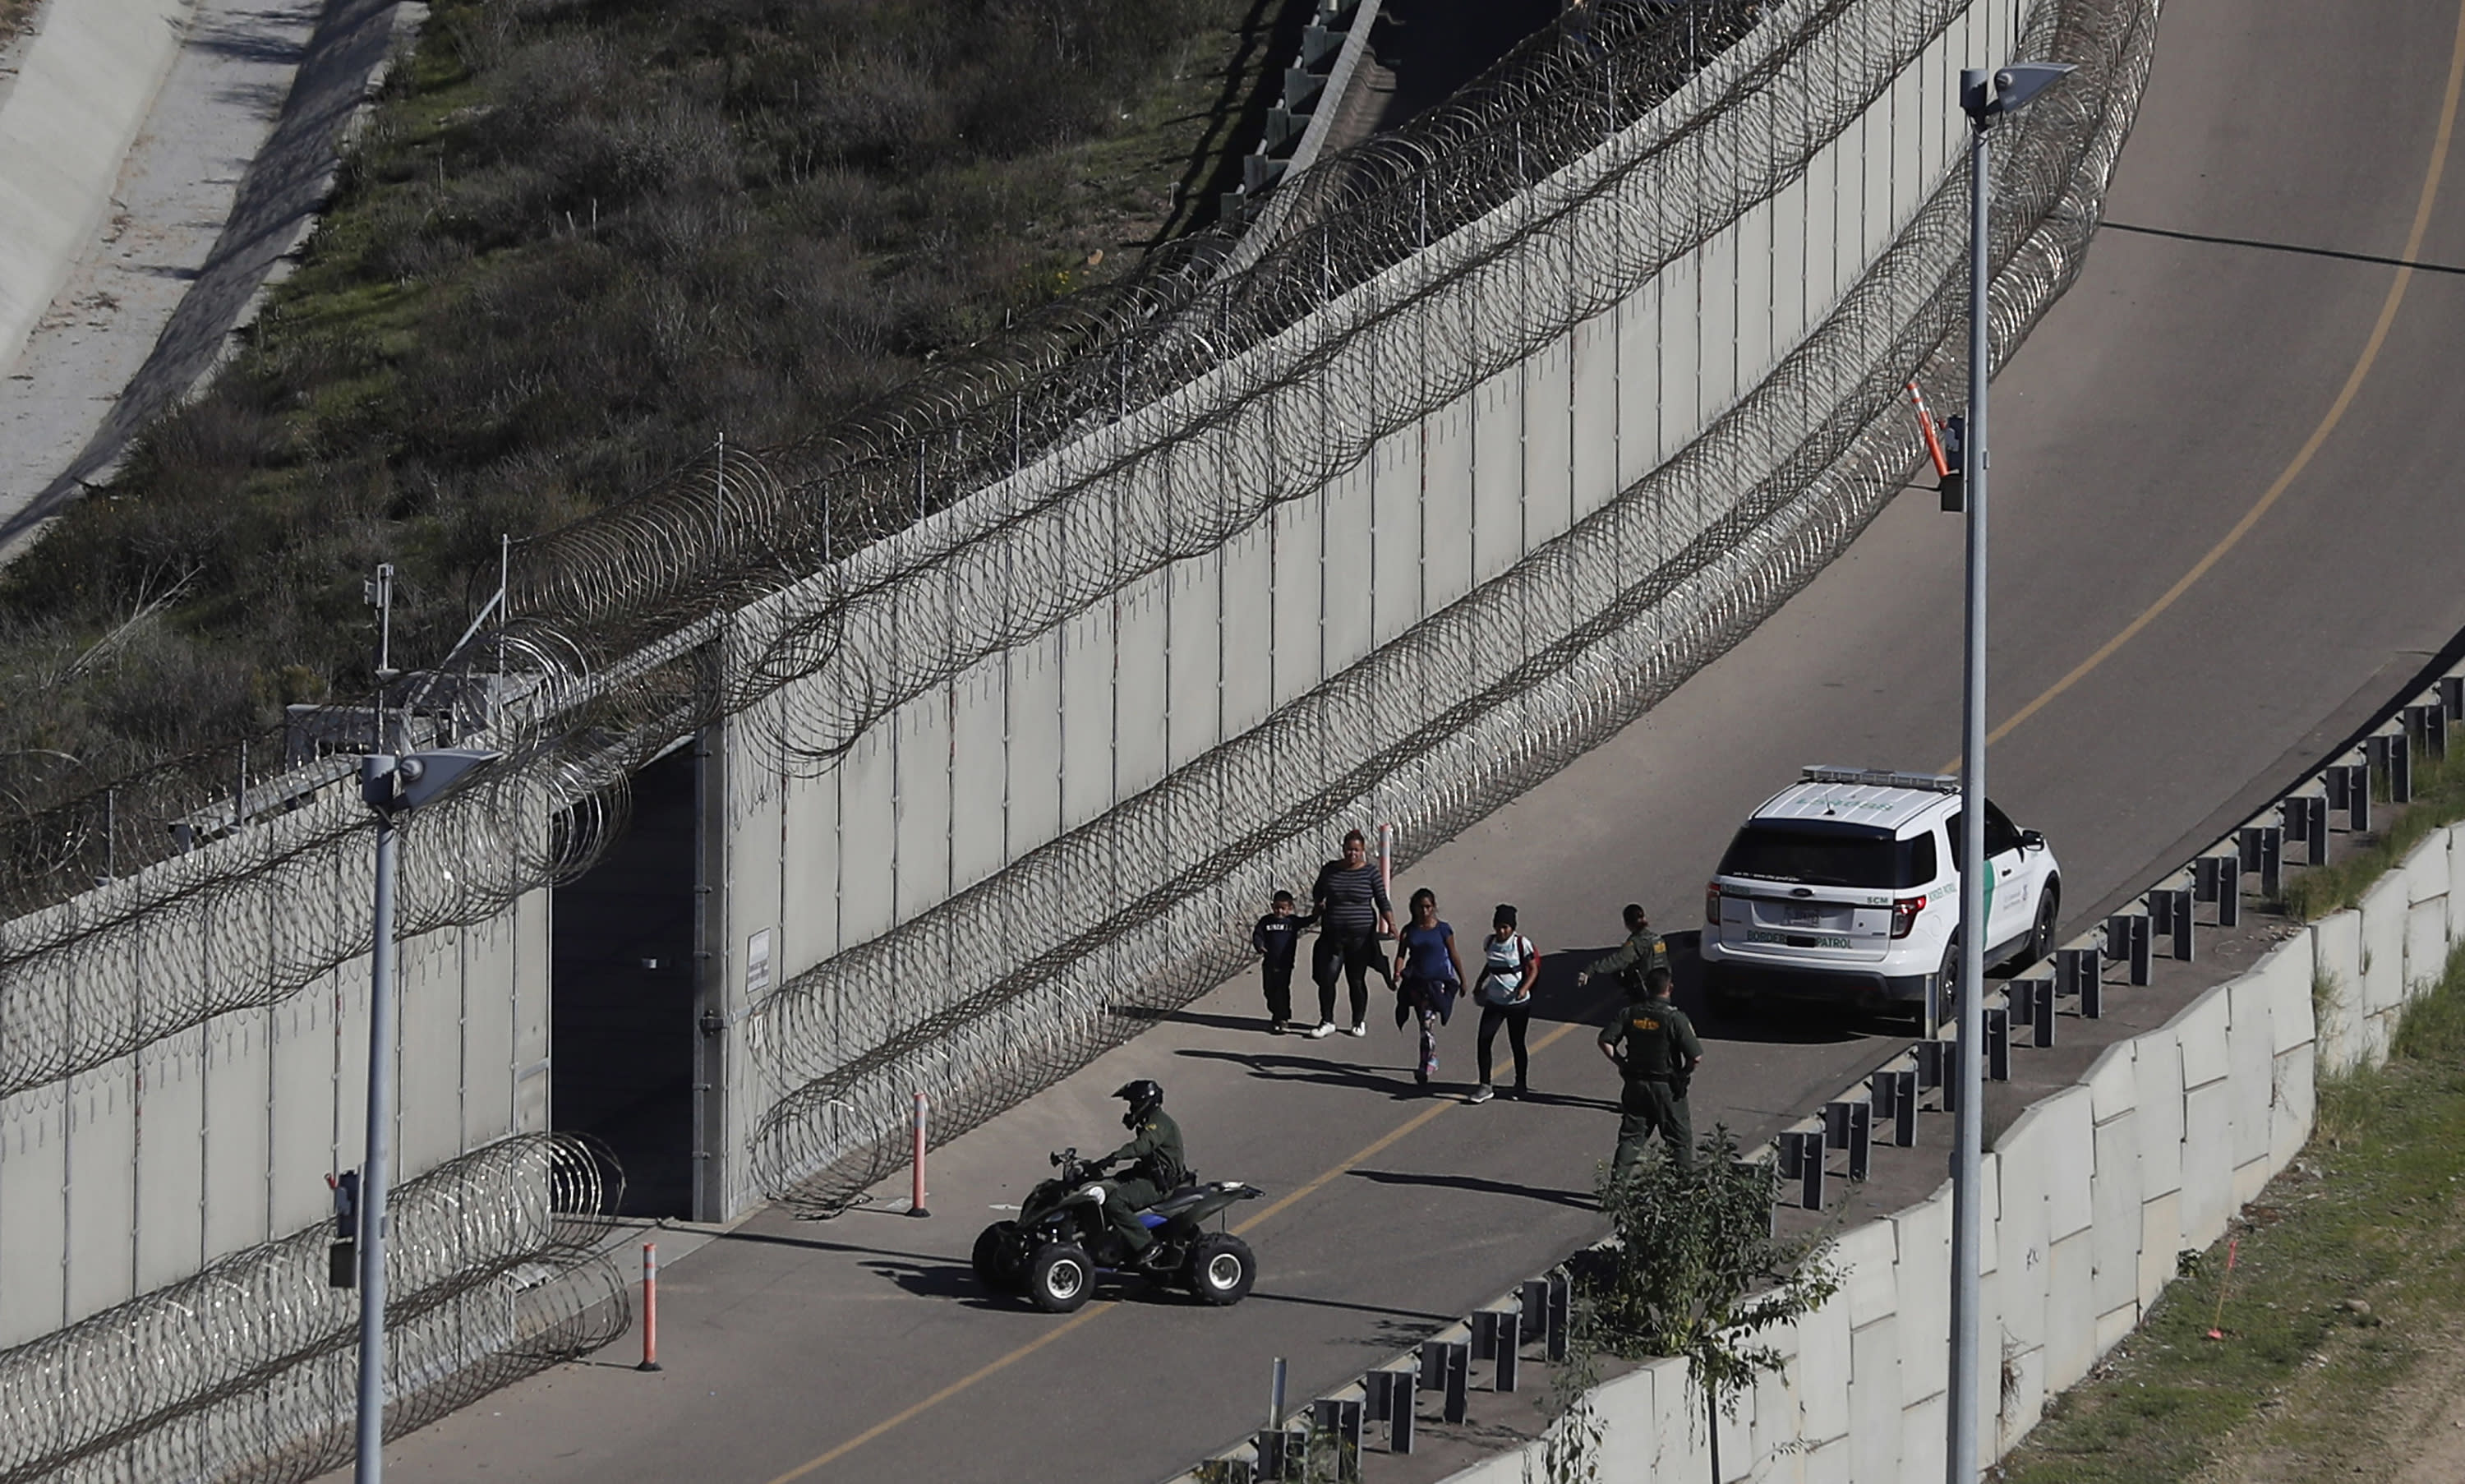 FILE - In this Dec. 16, 2018, file photo, Honduran asylum seekers are taken into custody by U.S. Border Patrol agents after the group crossed the U.S. border wall into San Diego, in this view from Tijuana, Mexico. In its efforts to remake the U.S. immigration system, the Trump administration has often stumbled over an obscure law that governs how administrative policies are made. Its latest test is a mammoth proposal to severely limit access to asylum, which invited nearly 80,000 public comments before the Wednesday, July 15, 2020, deadline to offer feedback. (AP Photo/Moises Castillo, File)